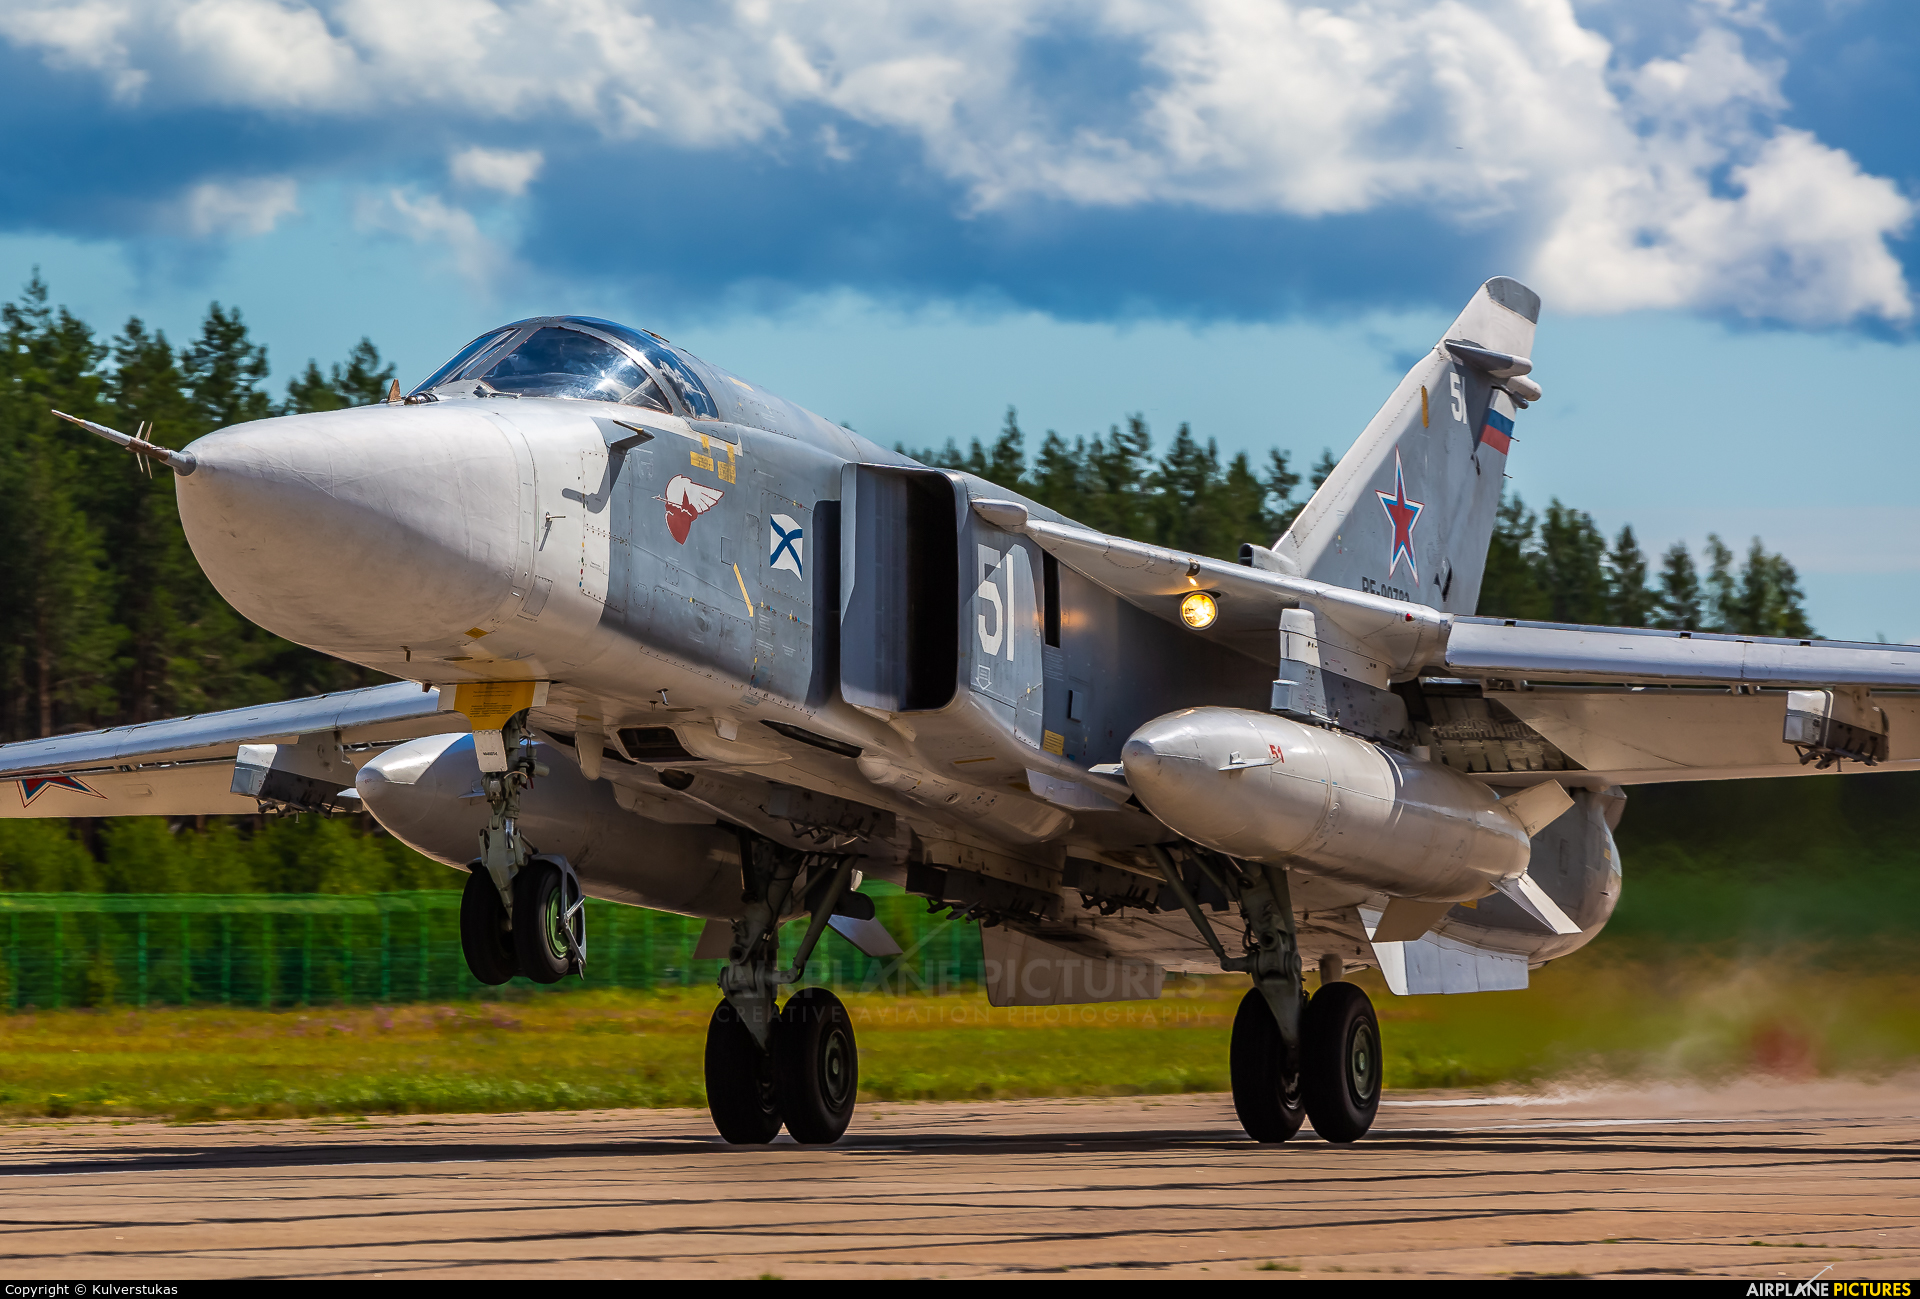 Russia - Air Force RF-90783 aircraft at Undisclosed Location